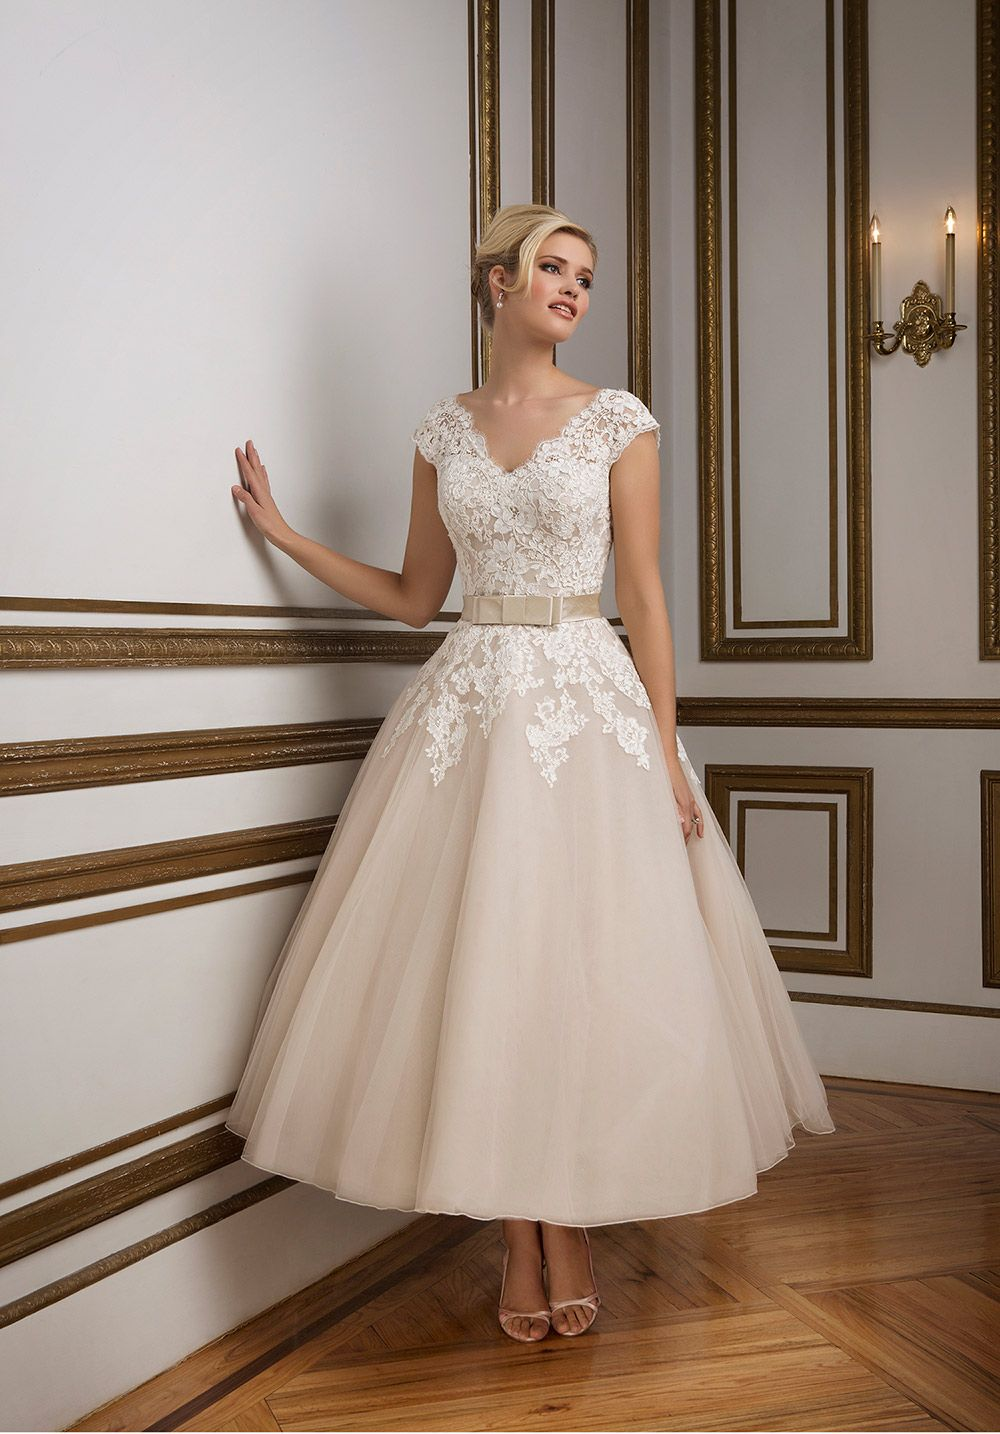 1950s wedding dresses our favourite styles inspired by the fabulous fifties wedding dress. Black Bedroom Furniture Sets. Home Design Ideas